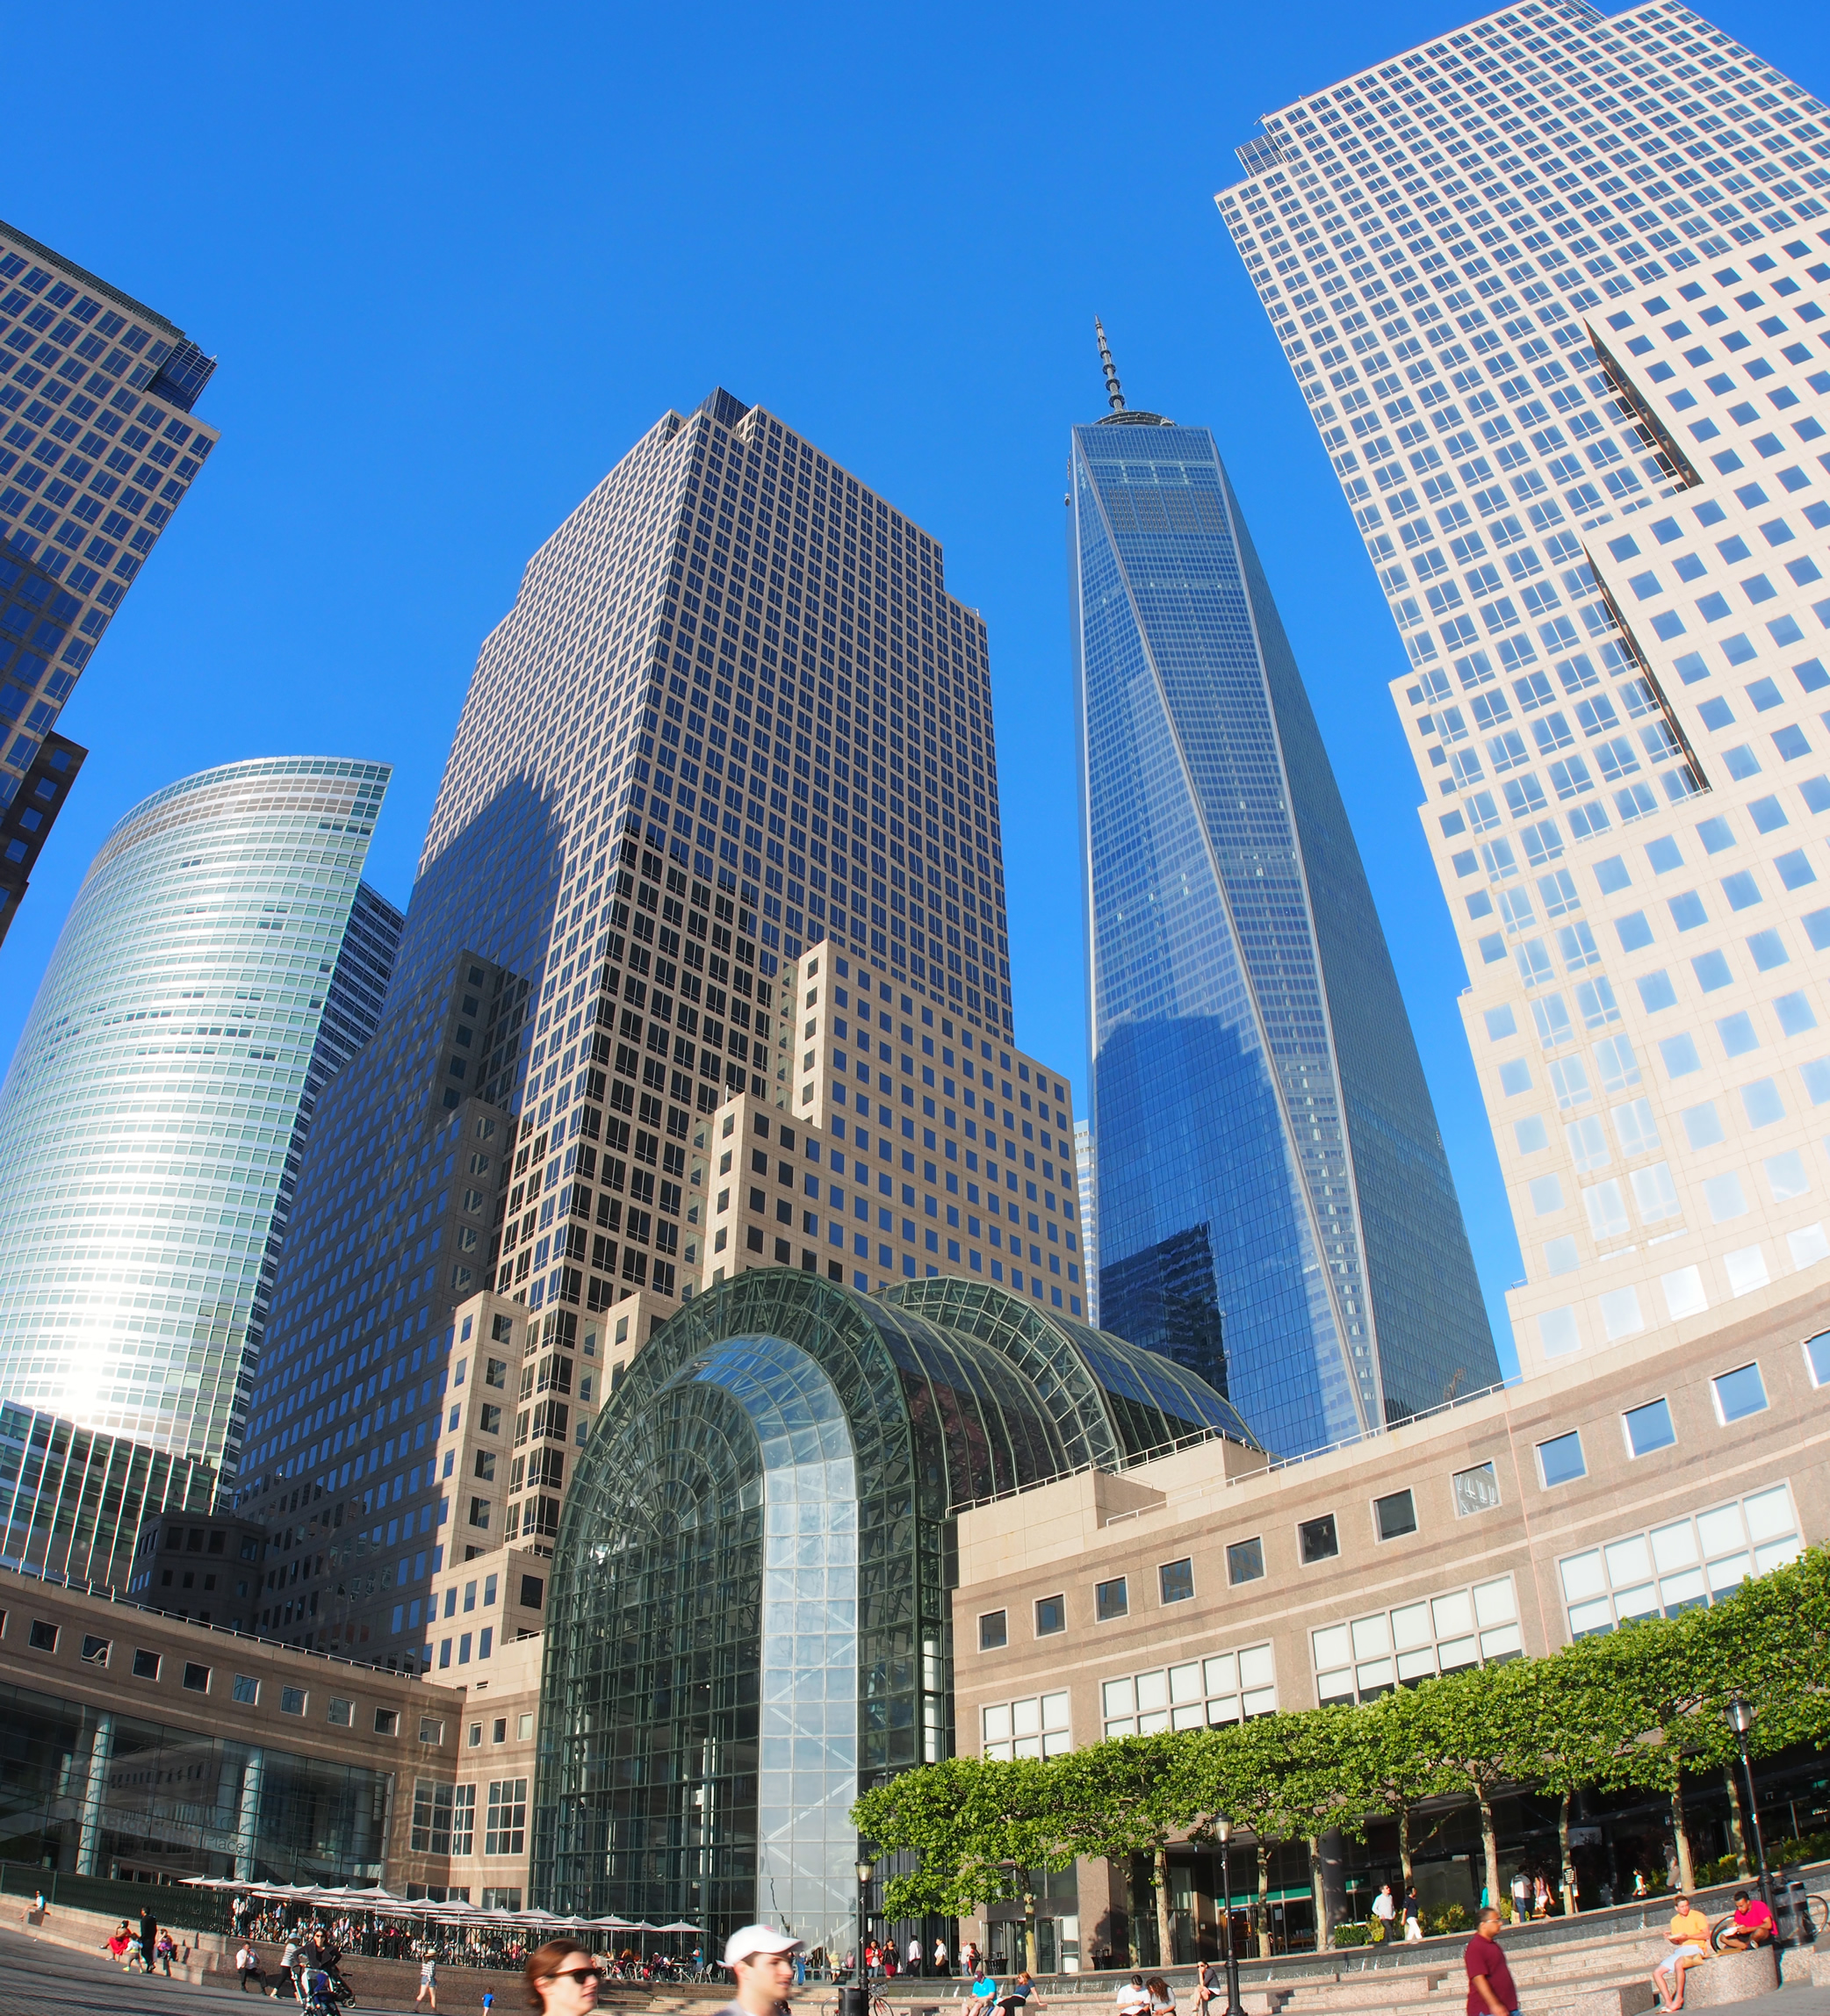 A fisheye view of Freedom Tower in NYC.